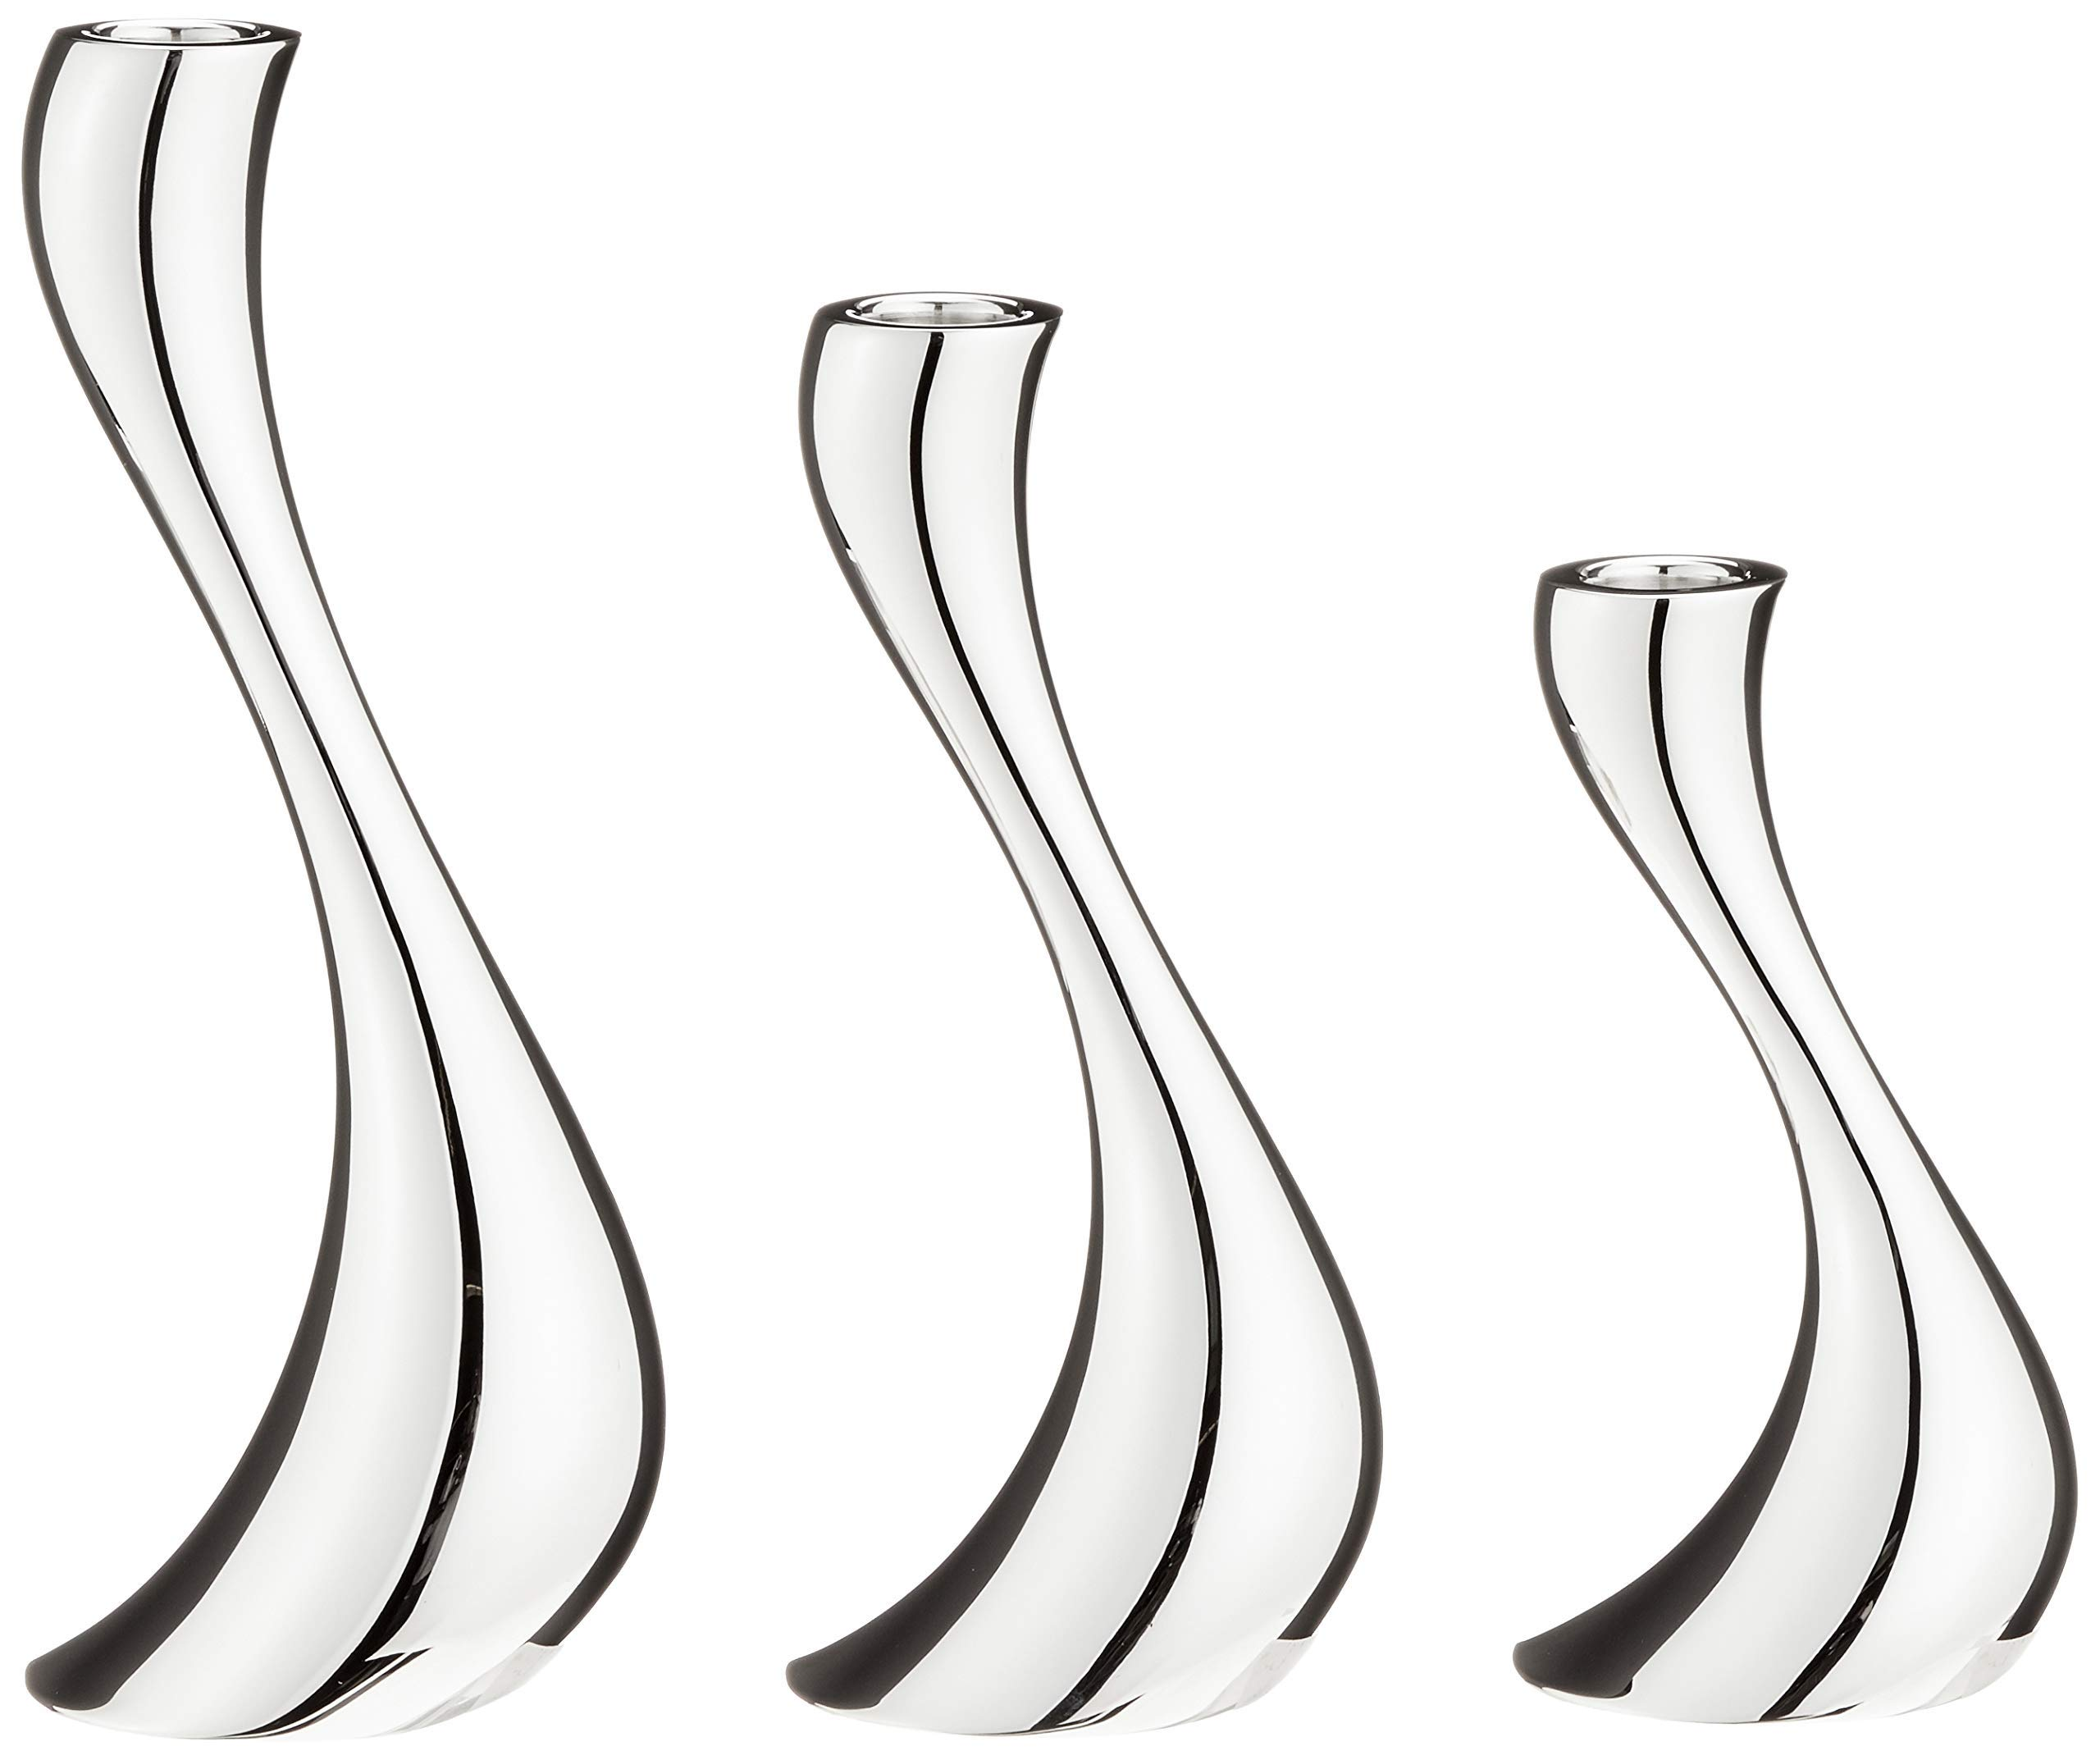 Georg Jensen Cobra Candleholders - 3 Pieces